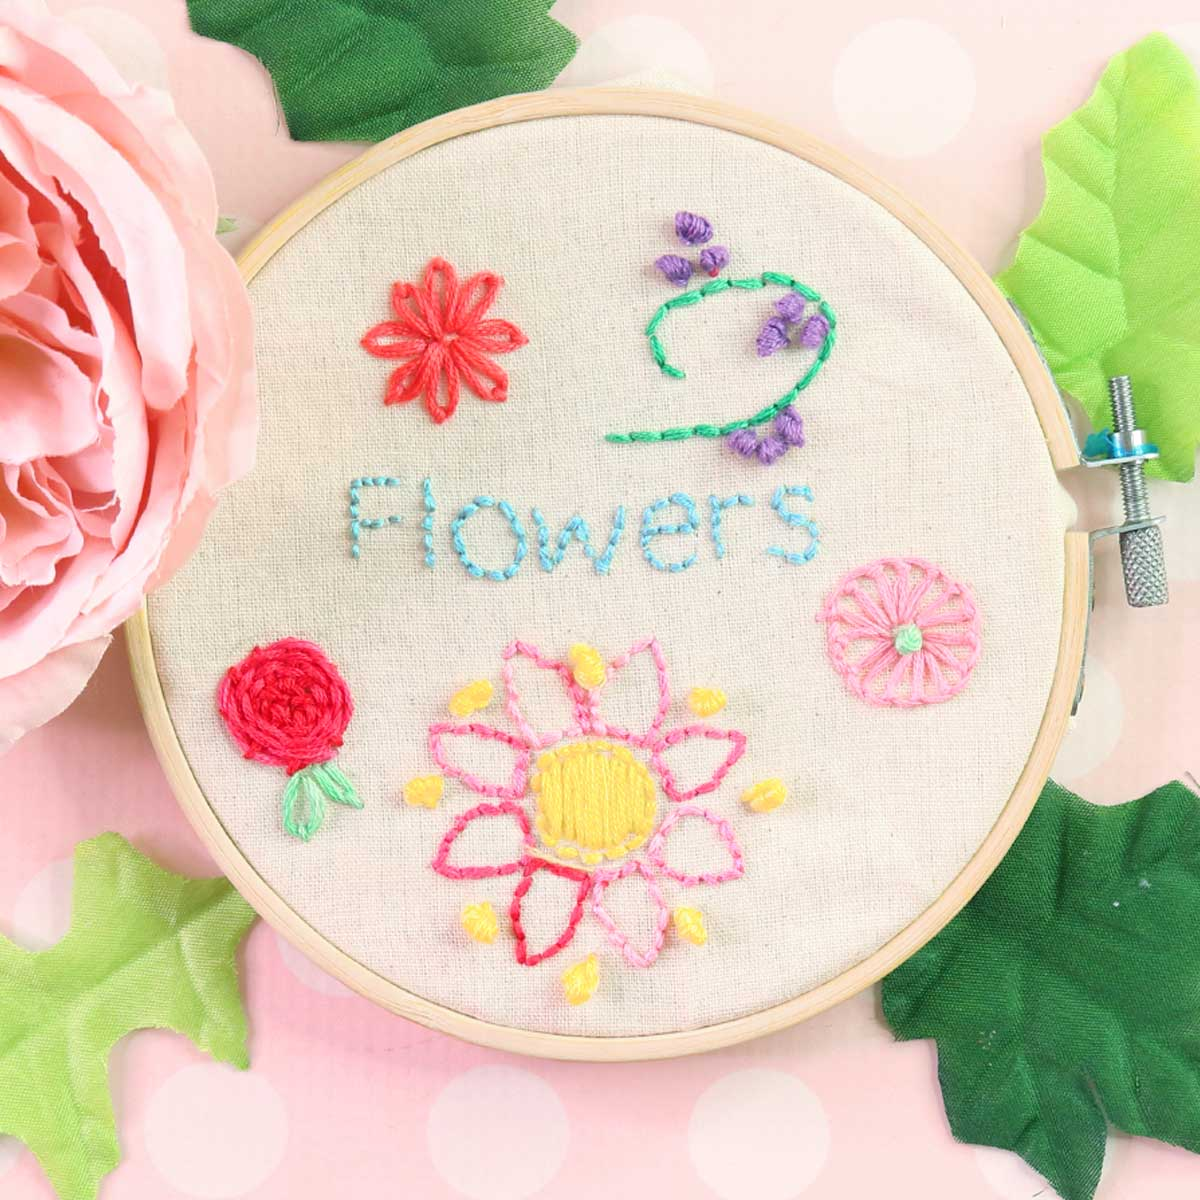 Embroidery Flowers The 14 Easiest For Beginners Treasurie,Unique Modern Sofa Set Designs For Living Room